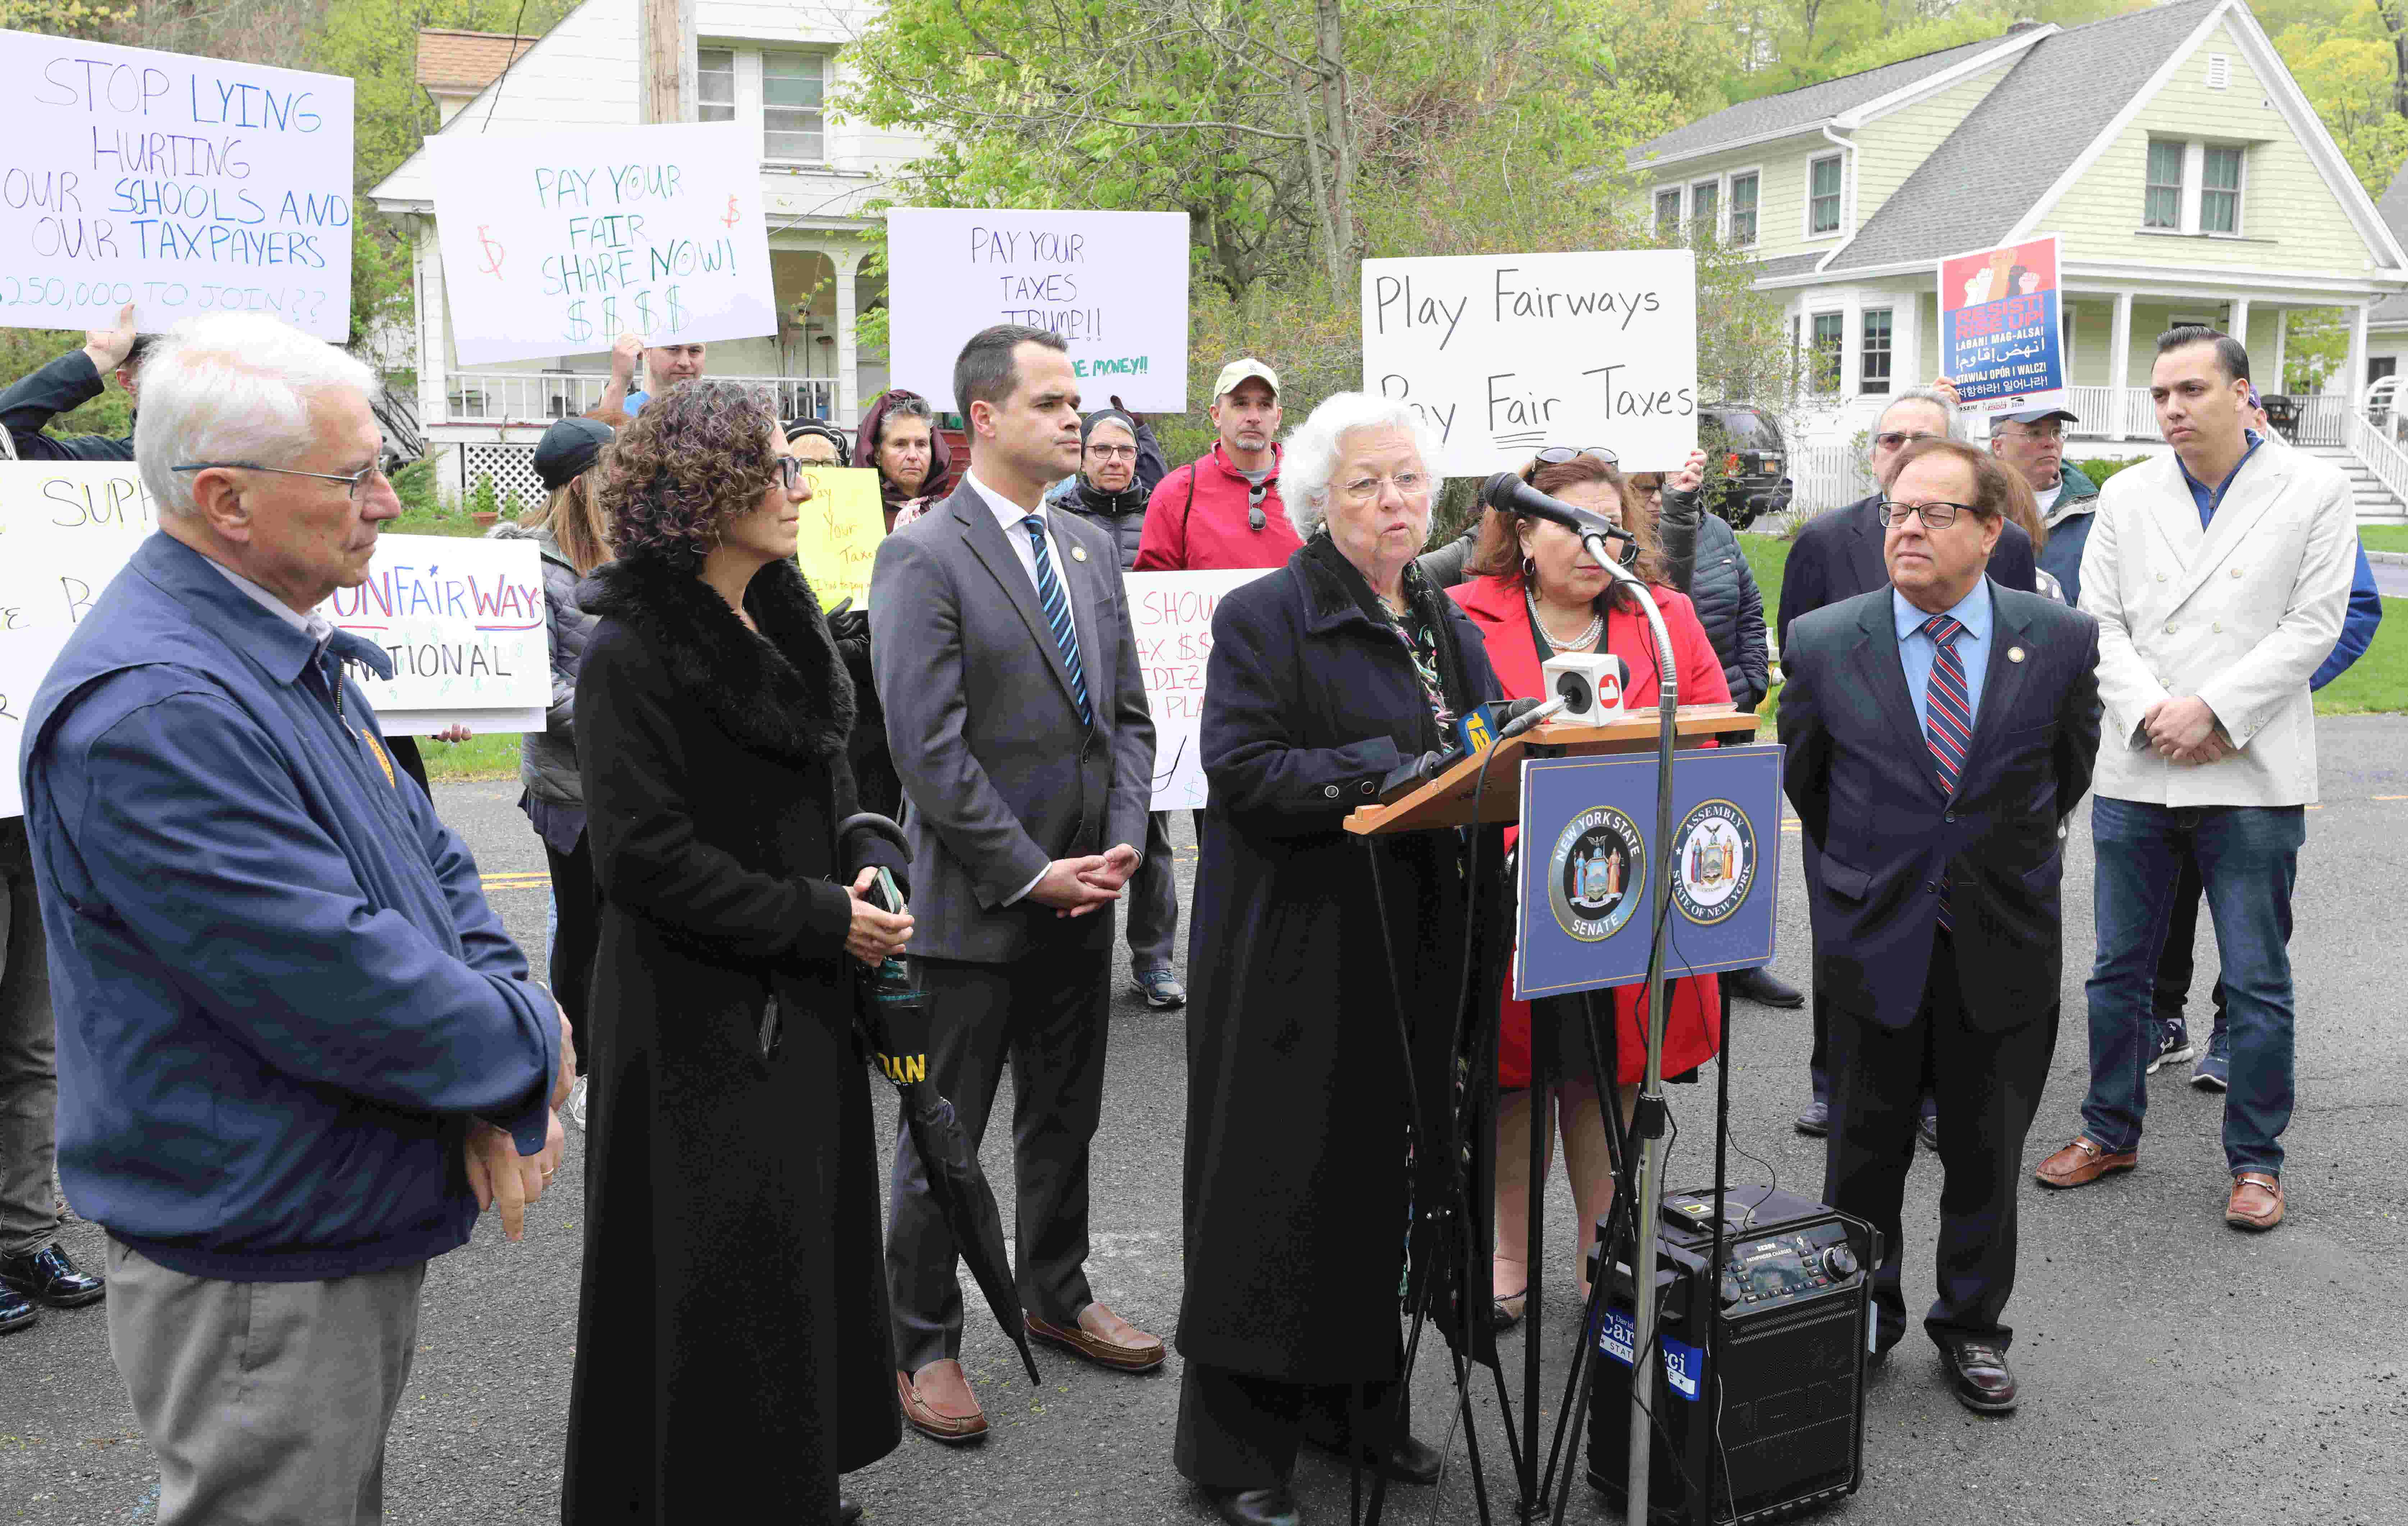 e091bf2cd0a Rally at Trump National Golf Club in Briarcliff Manor focuses on bill to  limit tax cuts